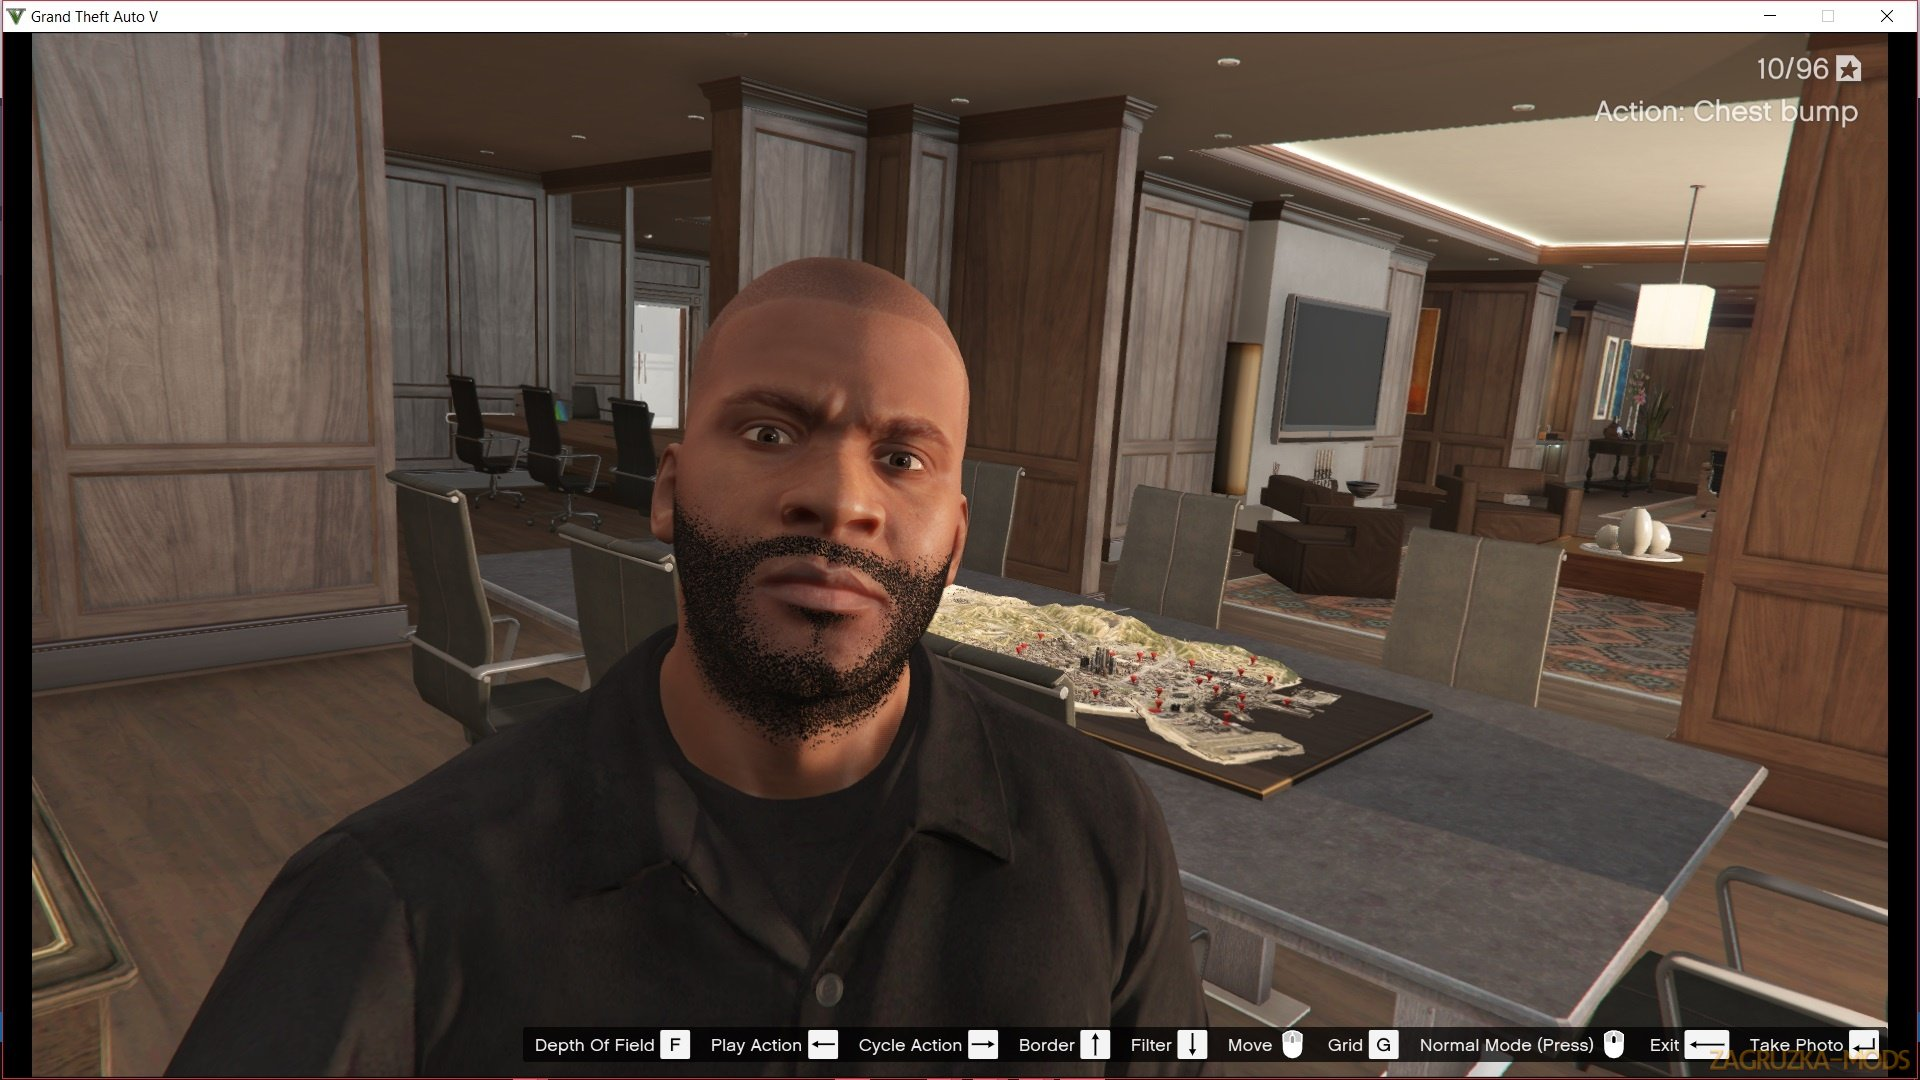 Executive Business Mod v3.0 for GTA 5